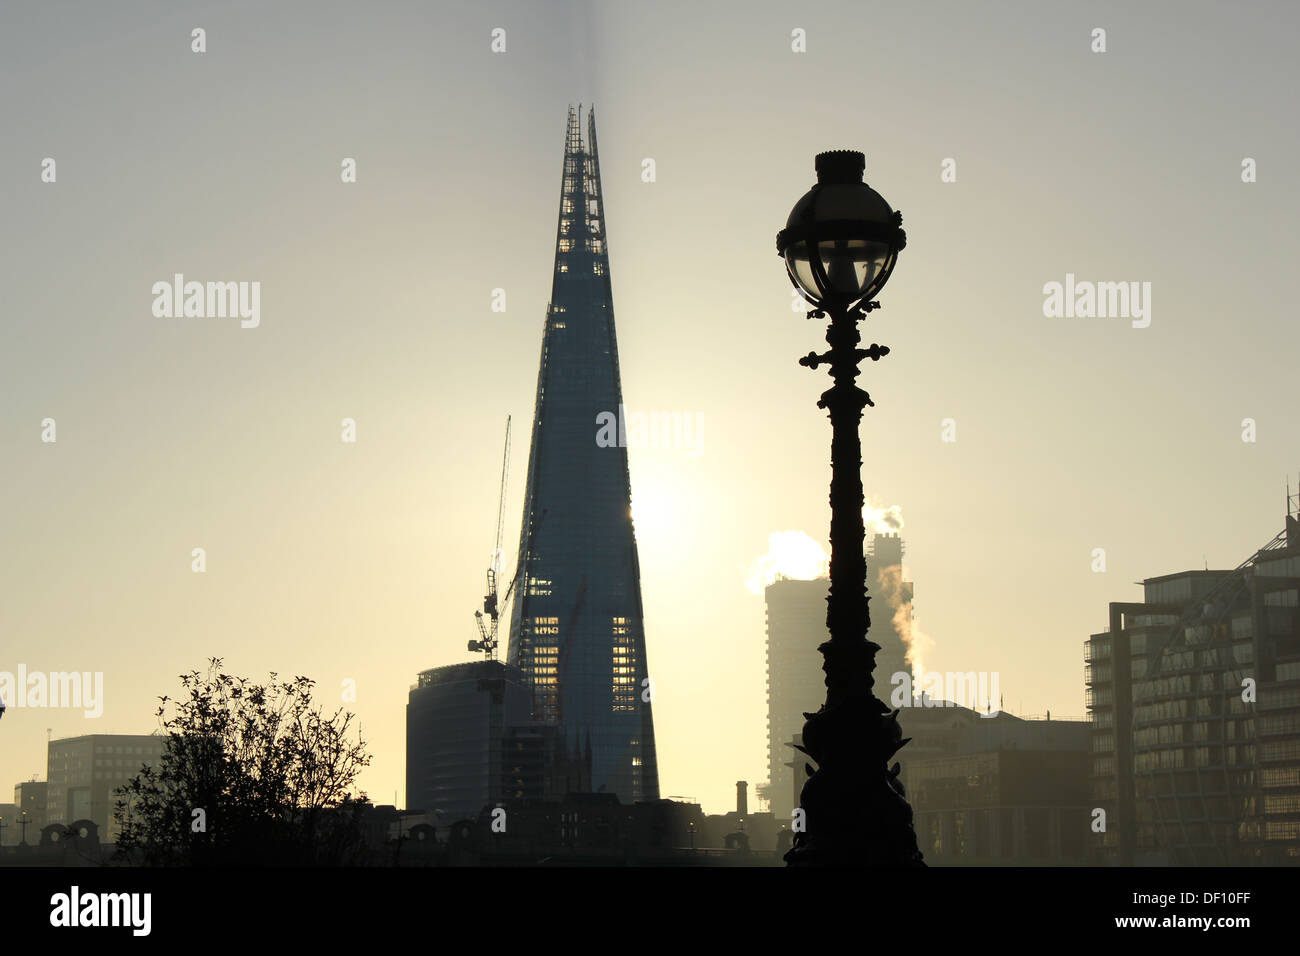 Landscape image of The London Shard and an Old street lamp in the early morning light Steam coming out of buildings behind - Stock Image